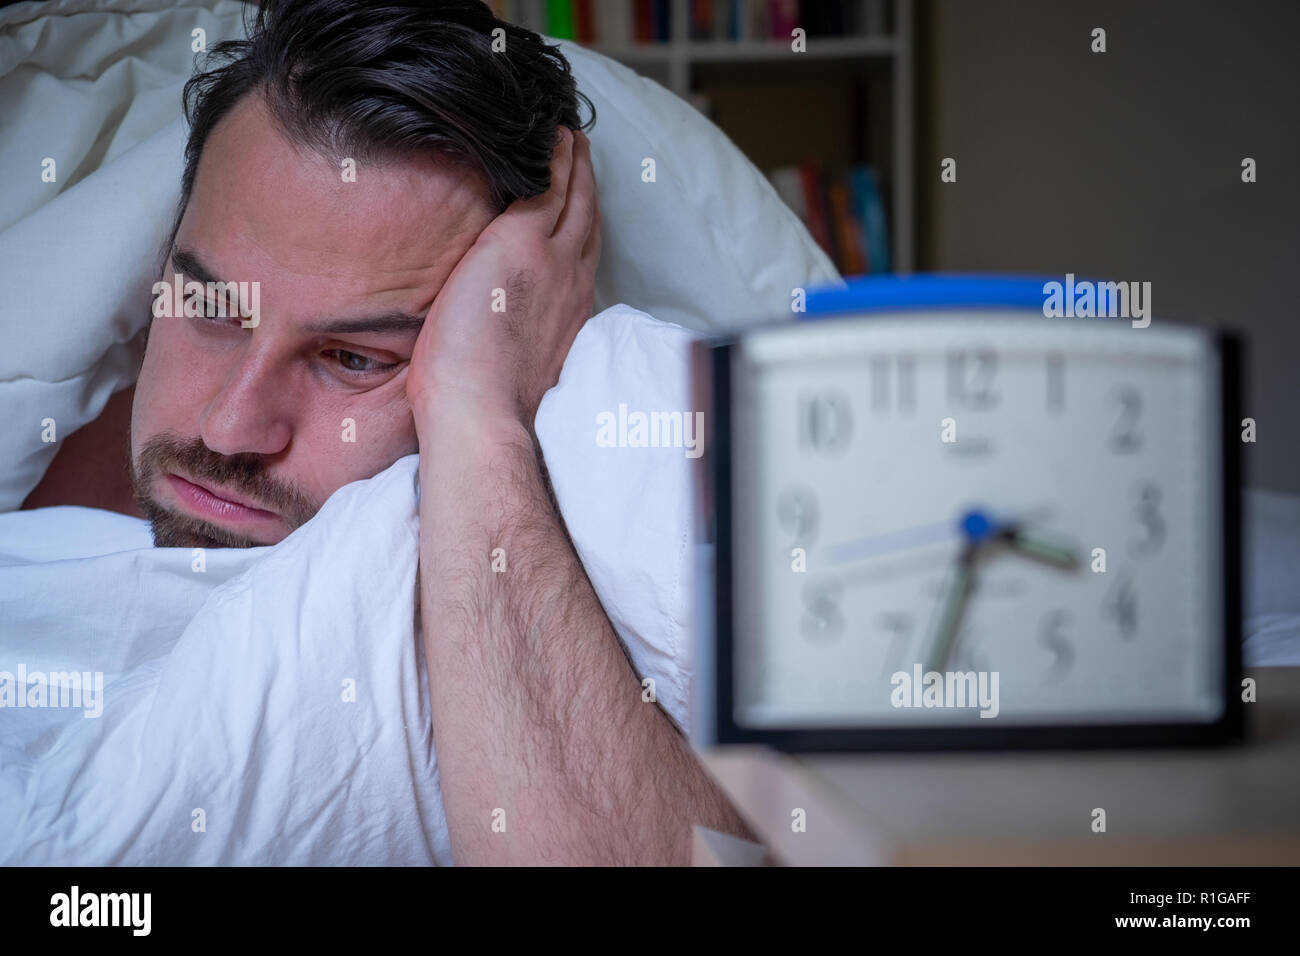 Anxious man suffering insomnia watching alarm clock - Stock Image